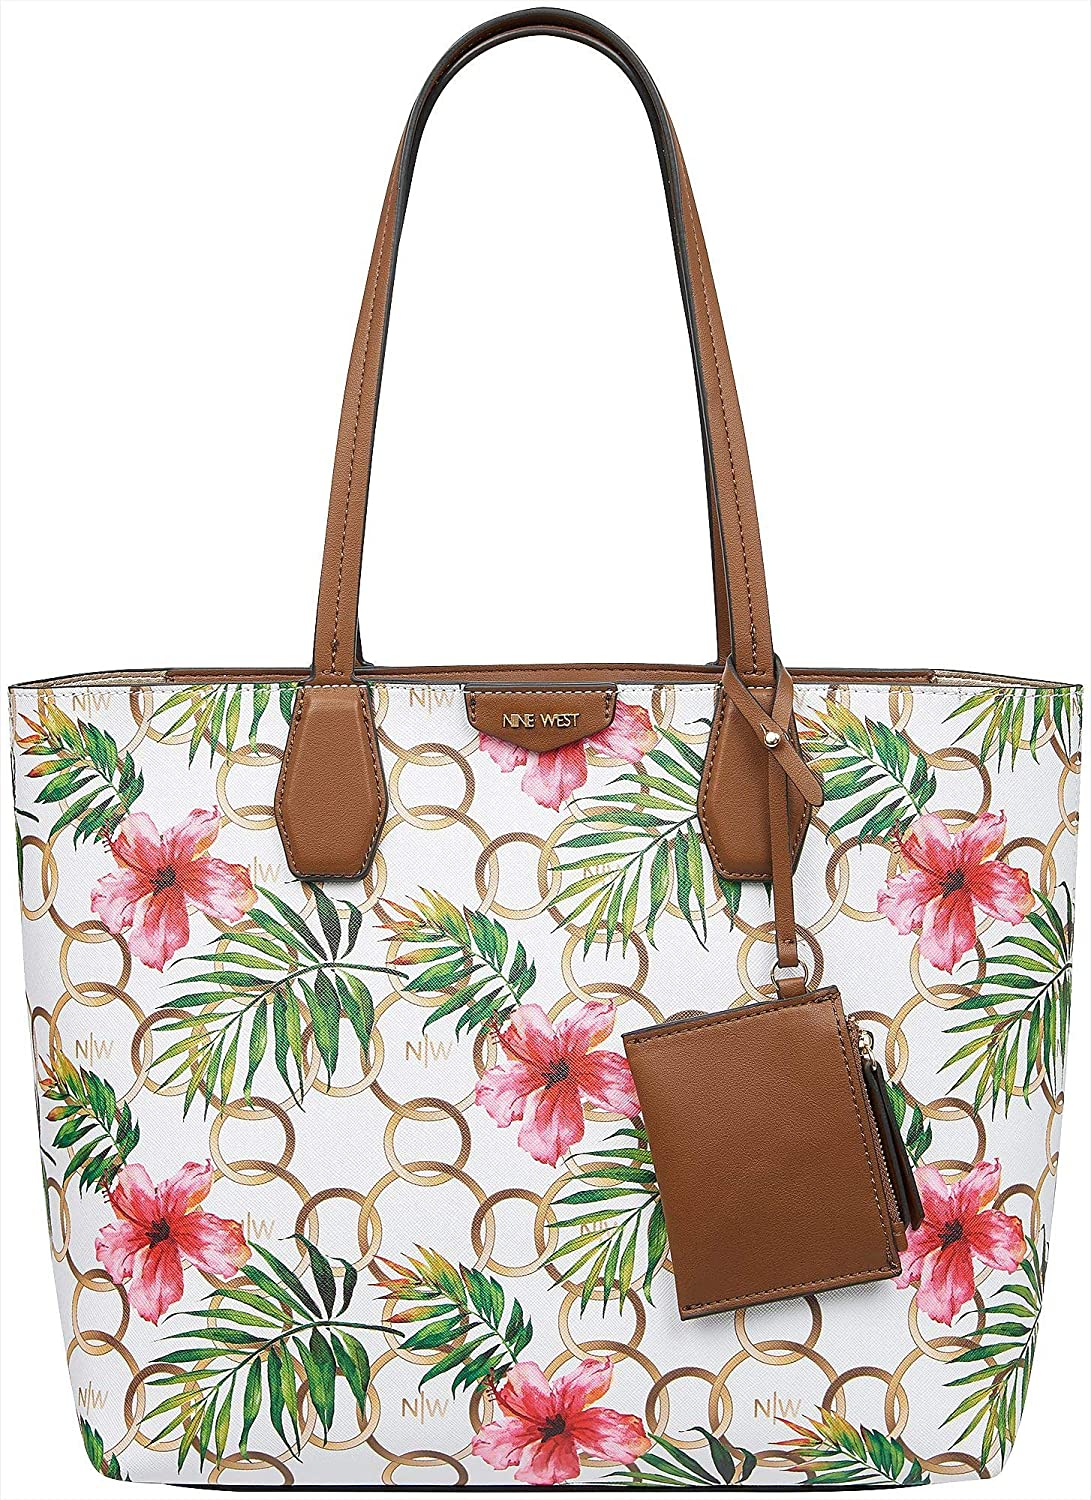 8834b8438 Amazon.com: Nine West Caden Ring & Hibiscus Print Tote Handbag  White/pink/brown/green: Shoes